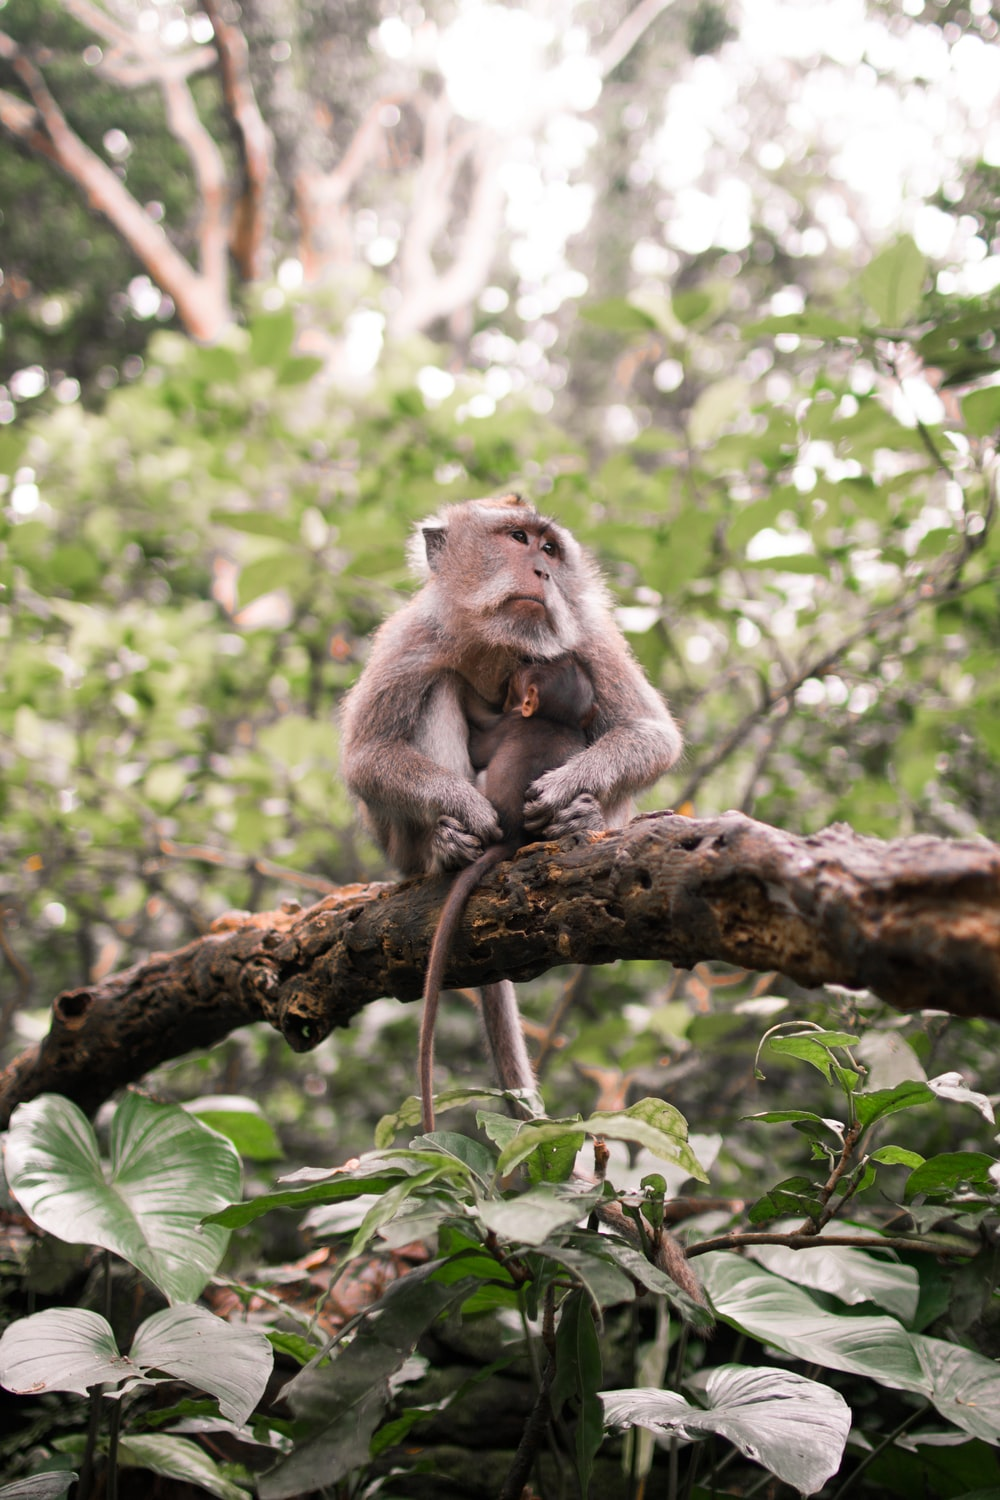 monkey on top of tree branch